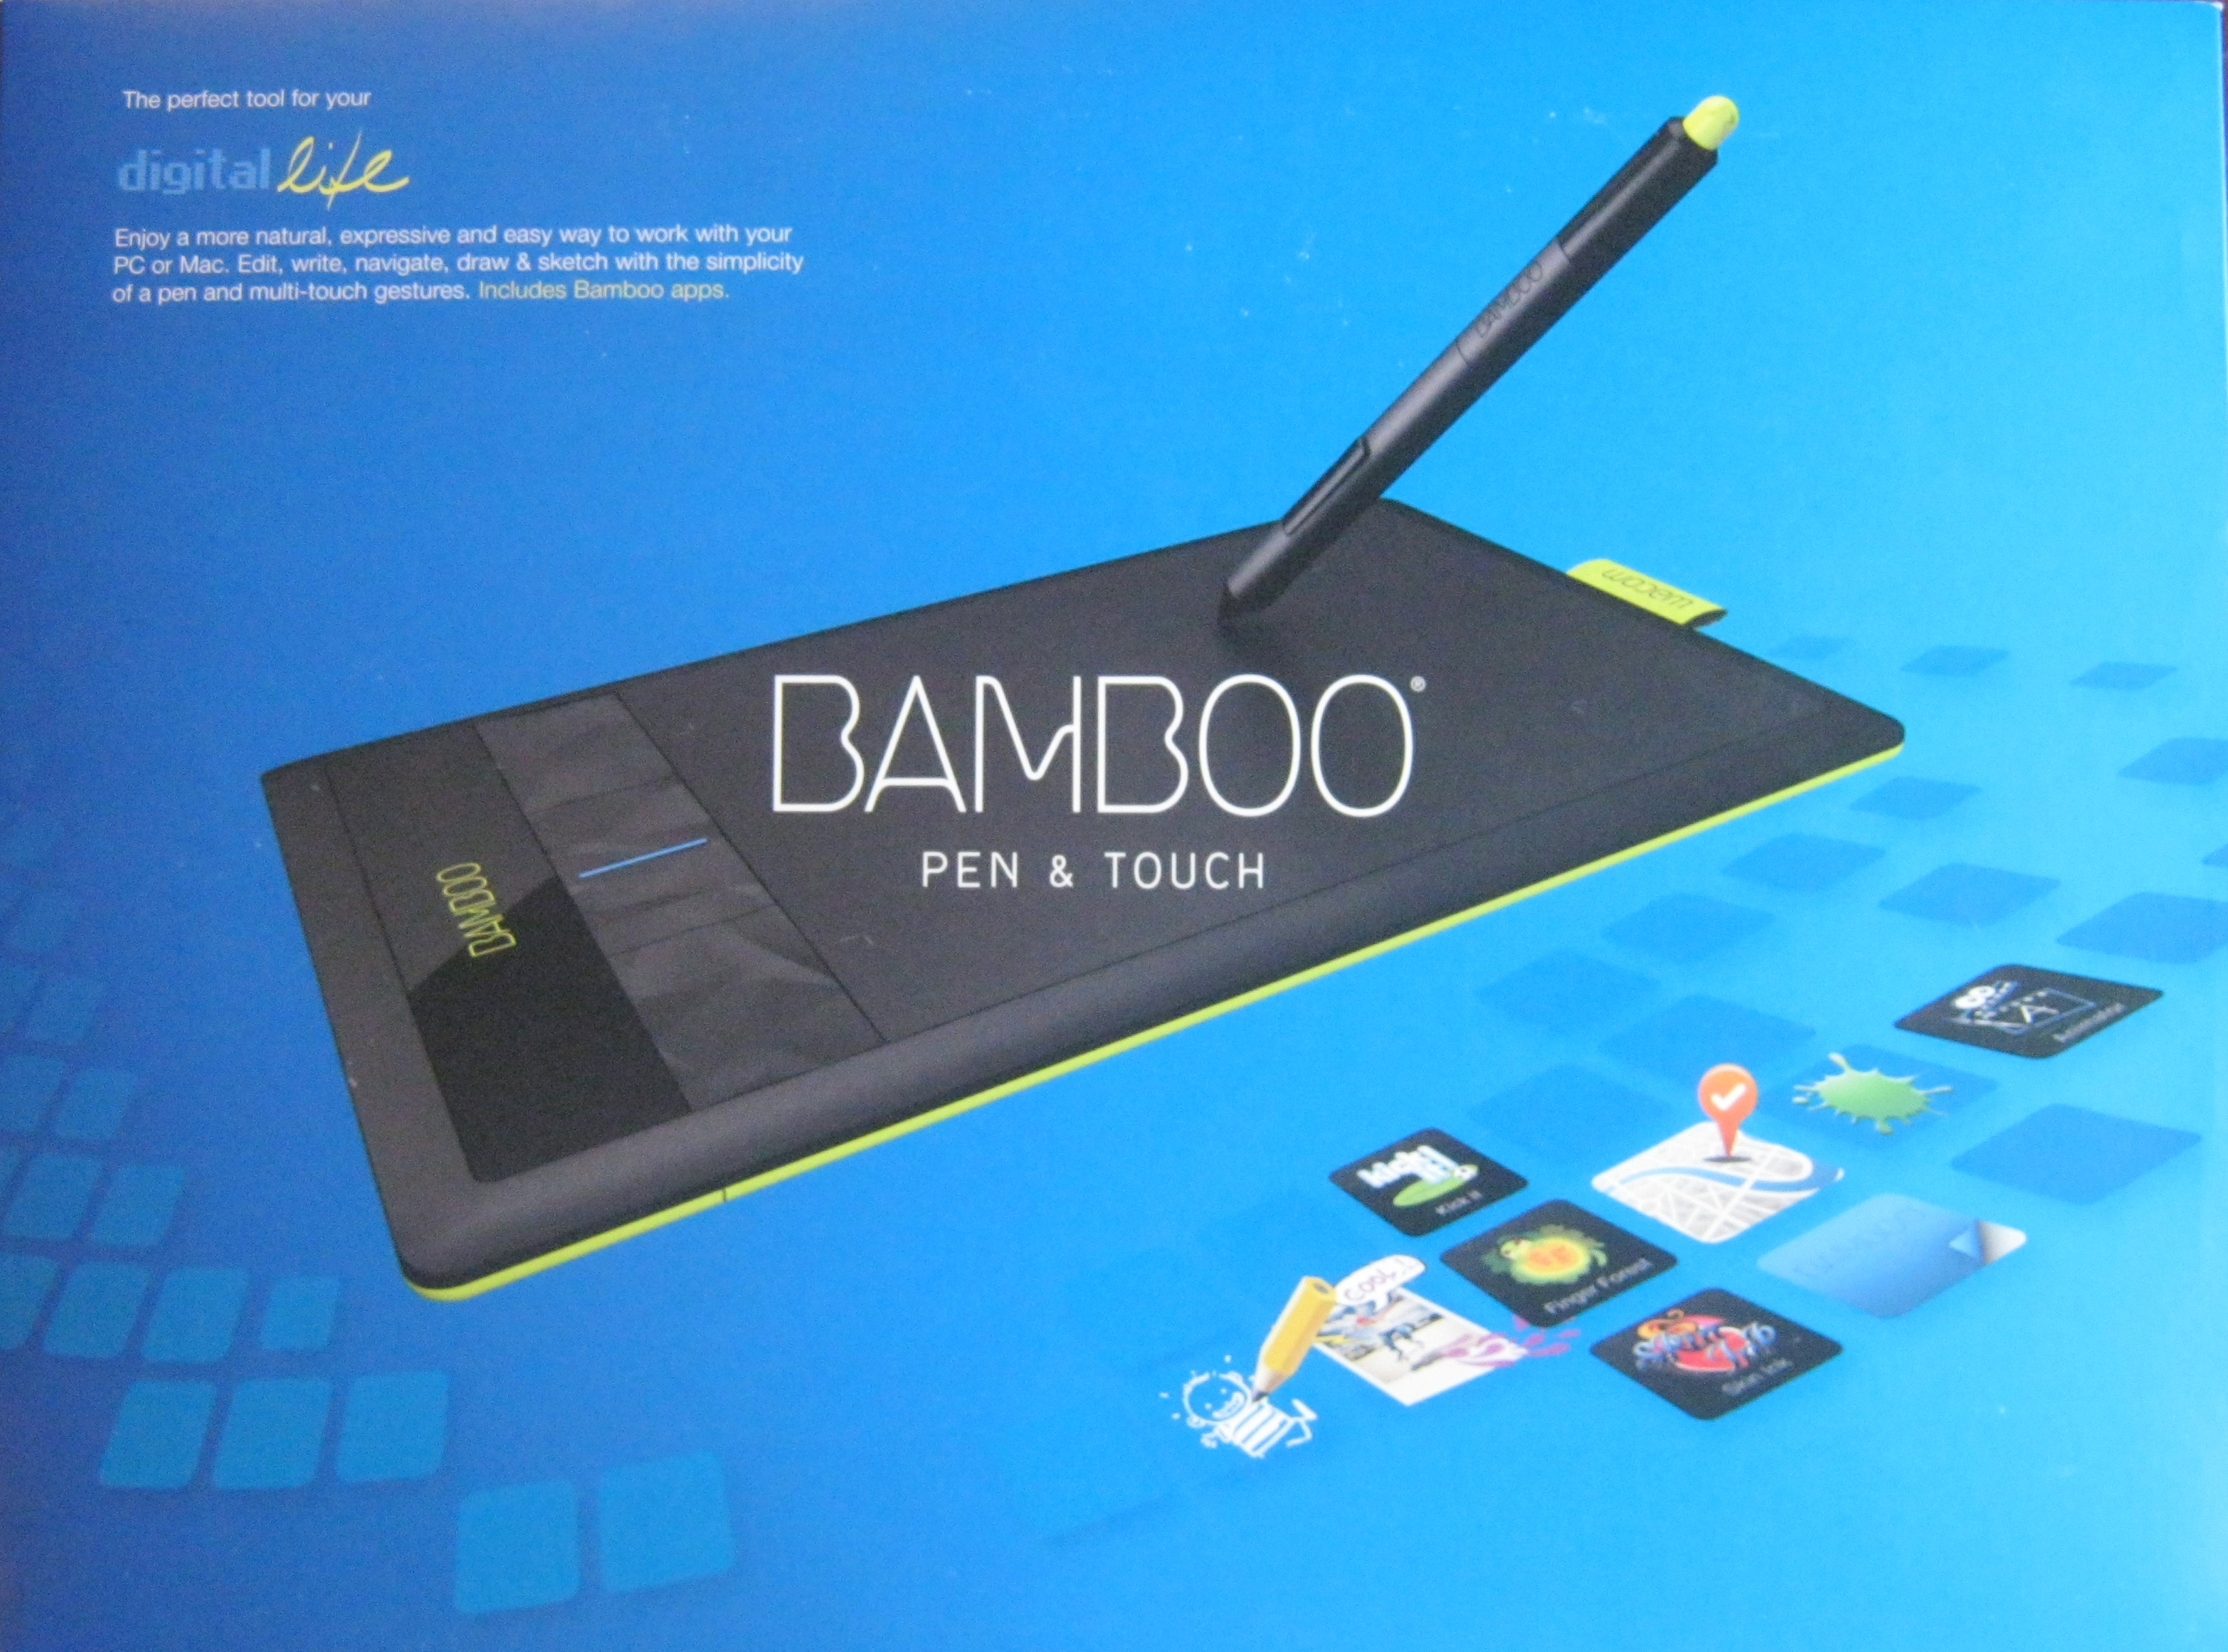 Wacom Bamboo Product Review For Wacom Bamboo Pen And Touch Graphics